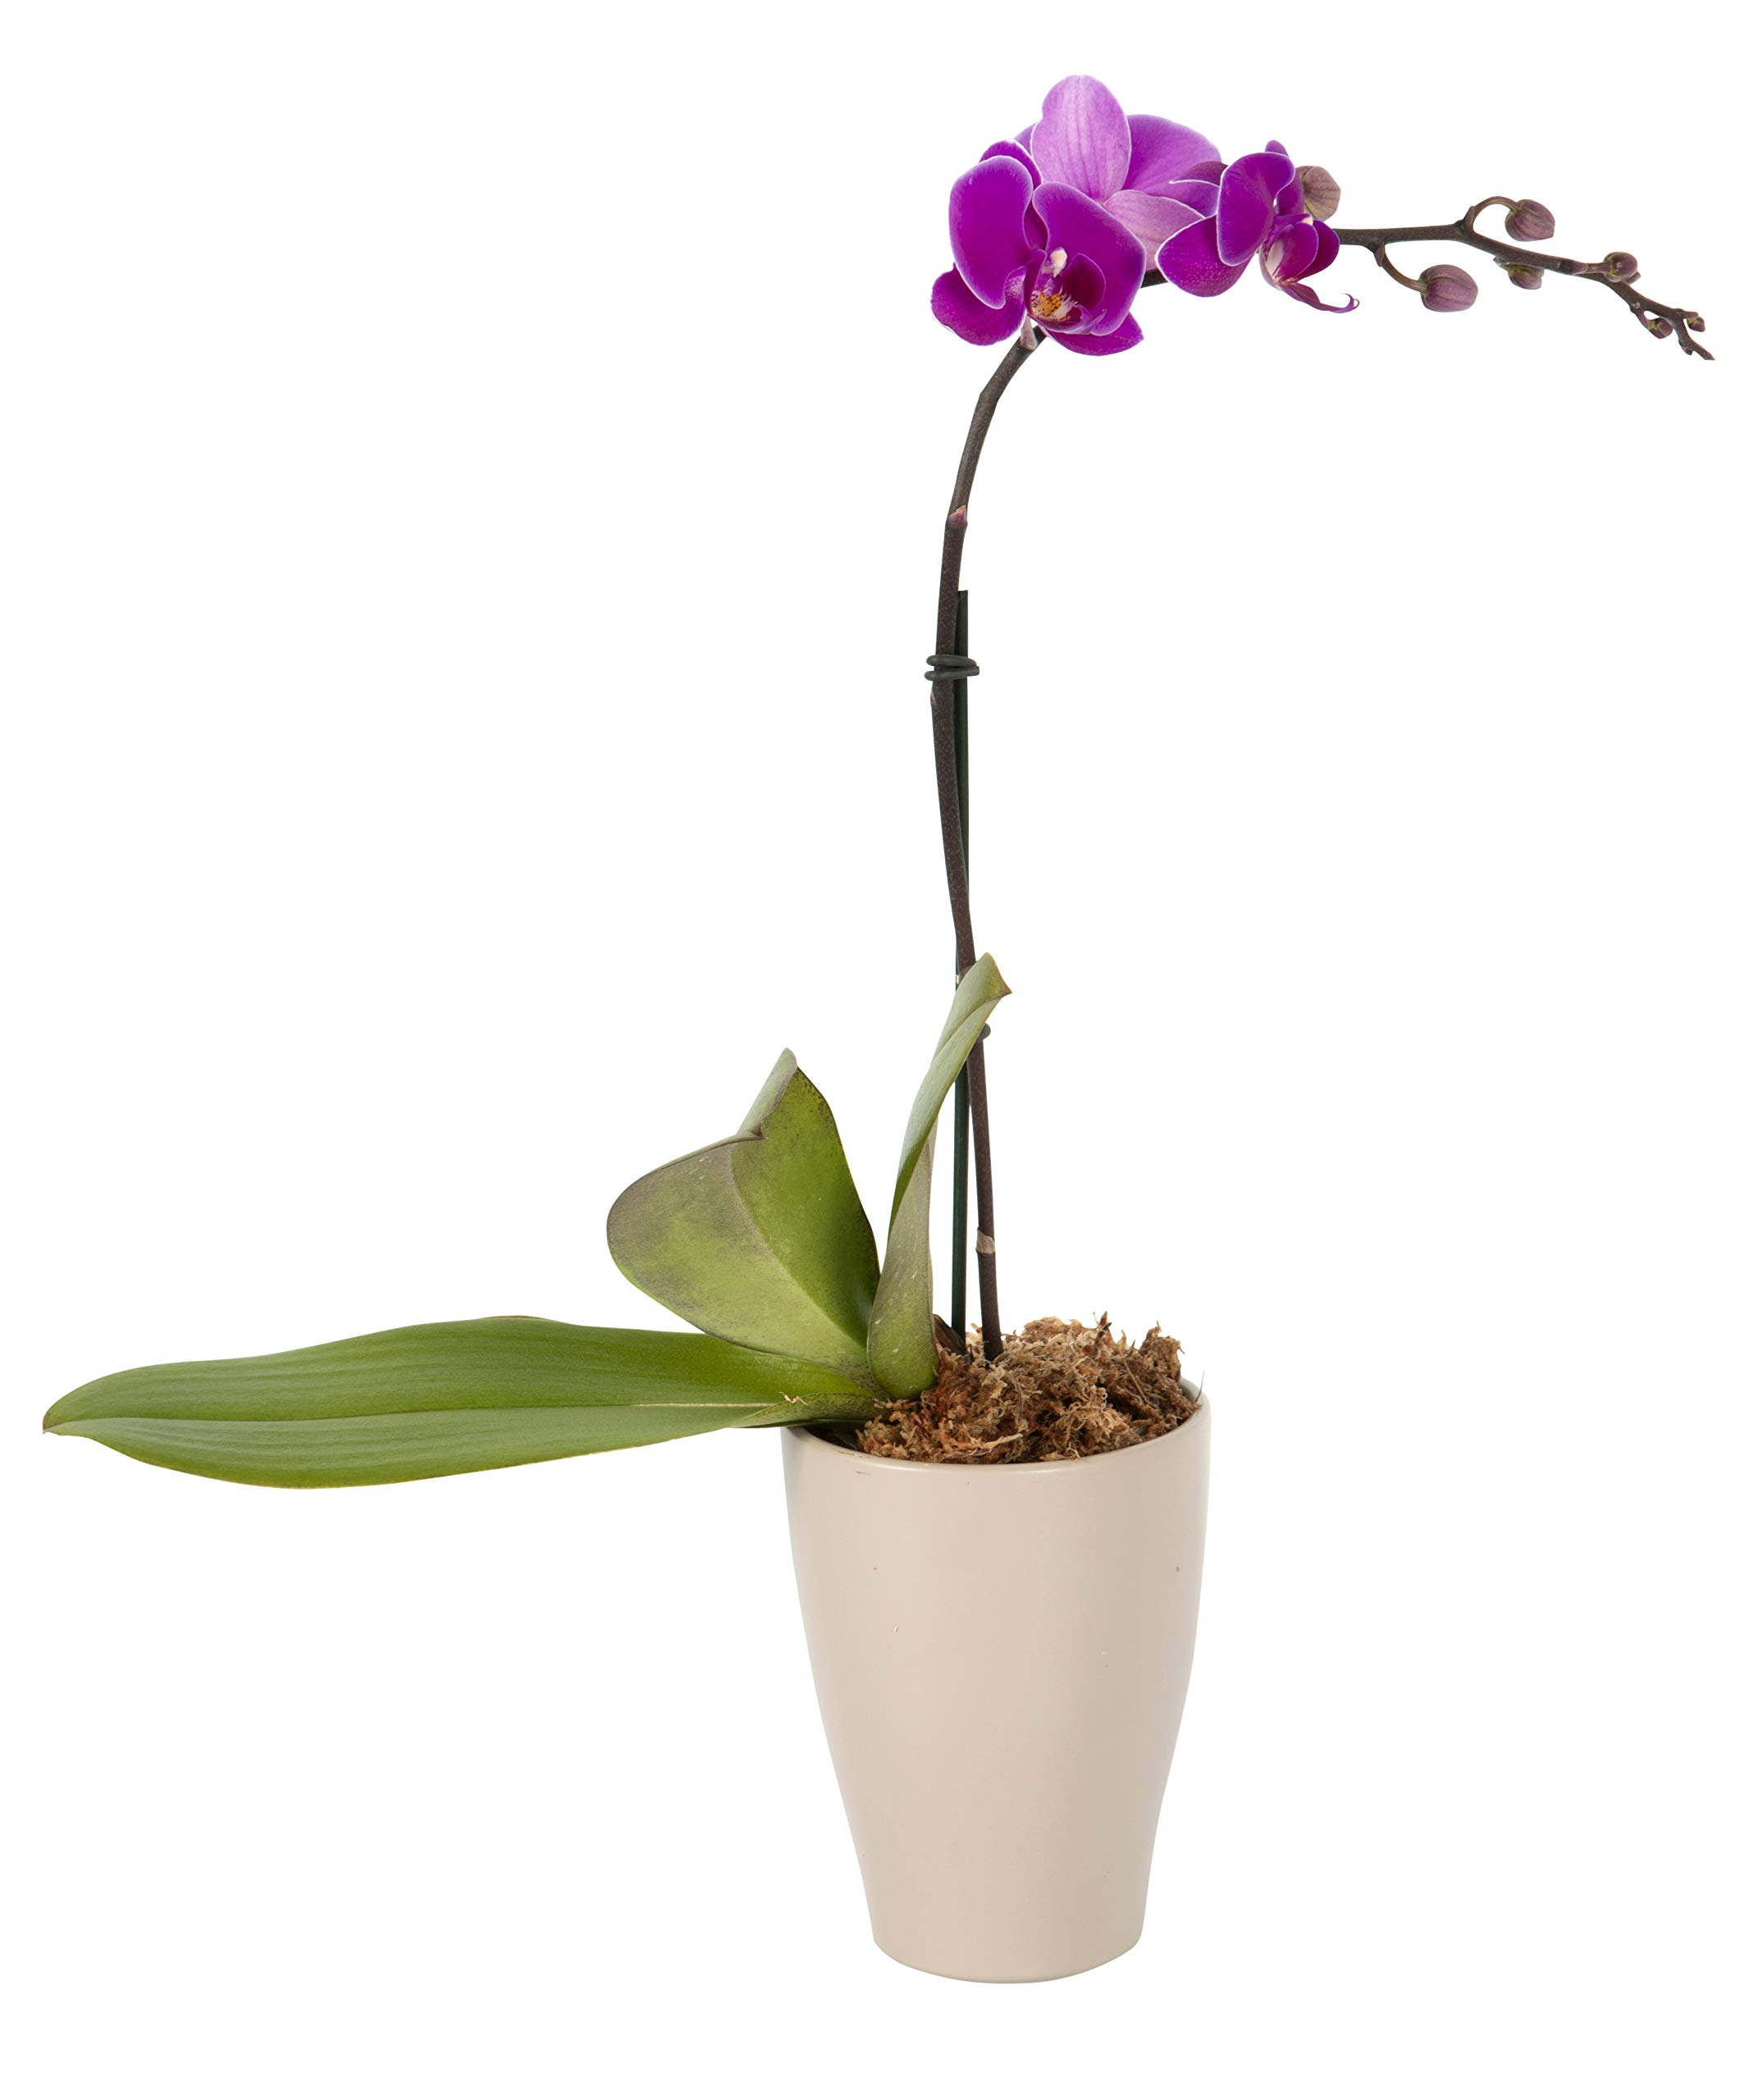 Color Orchids Live Blooming Single Stem Phalaenopsis Orchid Plant in Ceramic Pot, 15''-20'' Tall, Purple Blooms